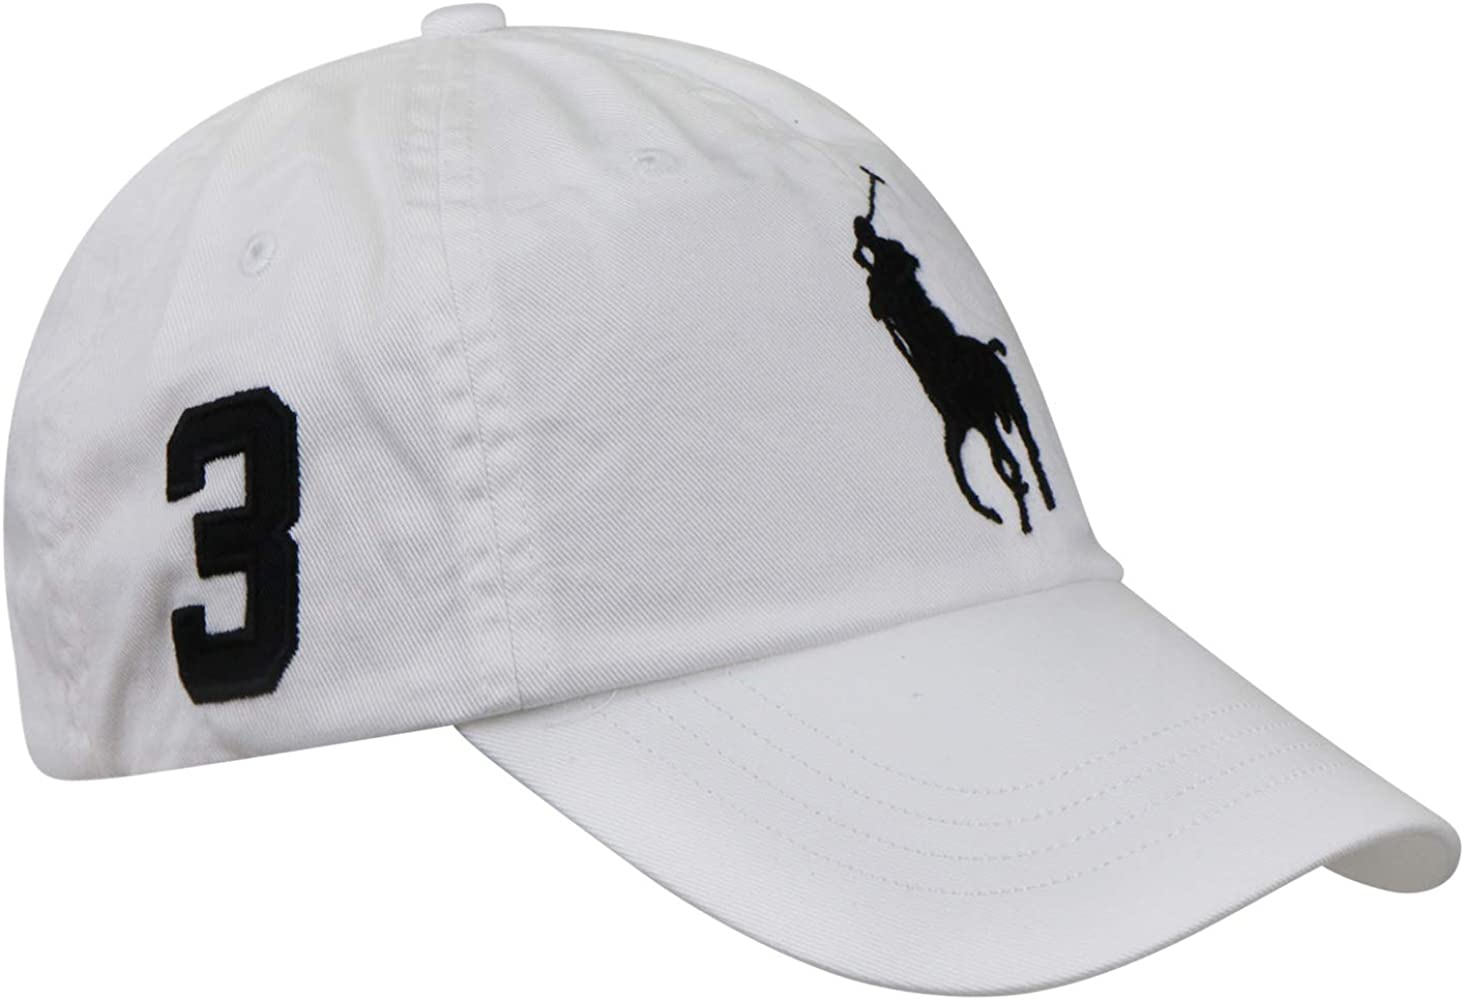 Ralph Lauren Gorra color blanco Big pony - Talla única, Blanco ...